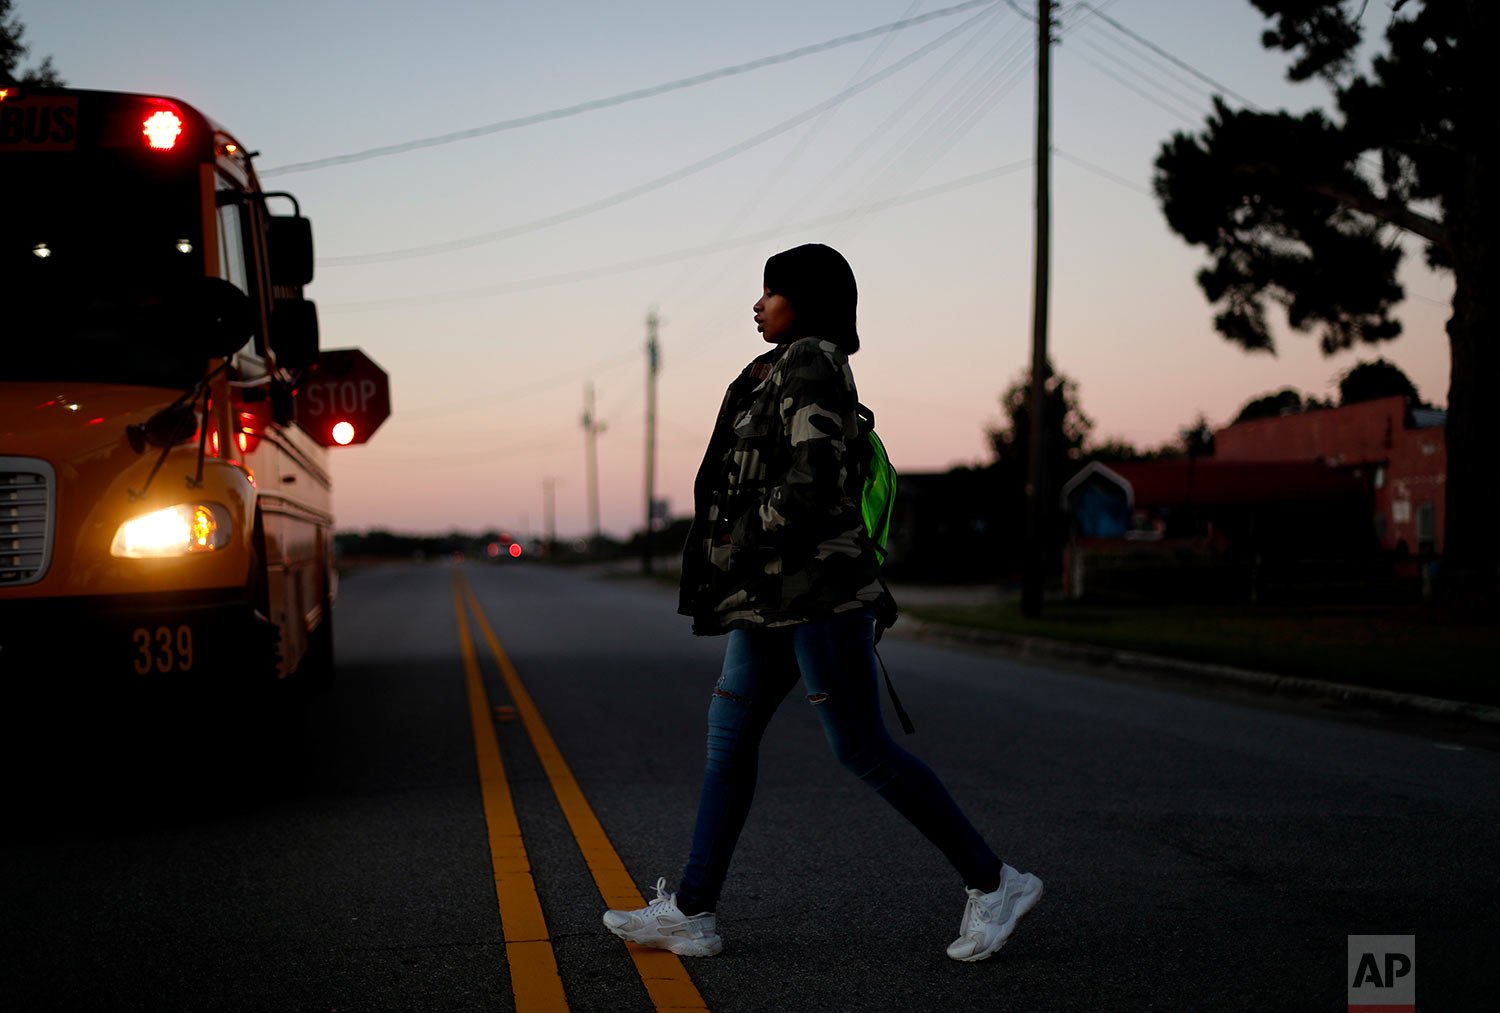 South Robeson High School student and cheerleader Aajah Washington crosses the street to catch the school bus outside her home in Rowland, N.C.(AP Photo/David Goldman)